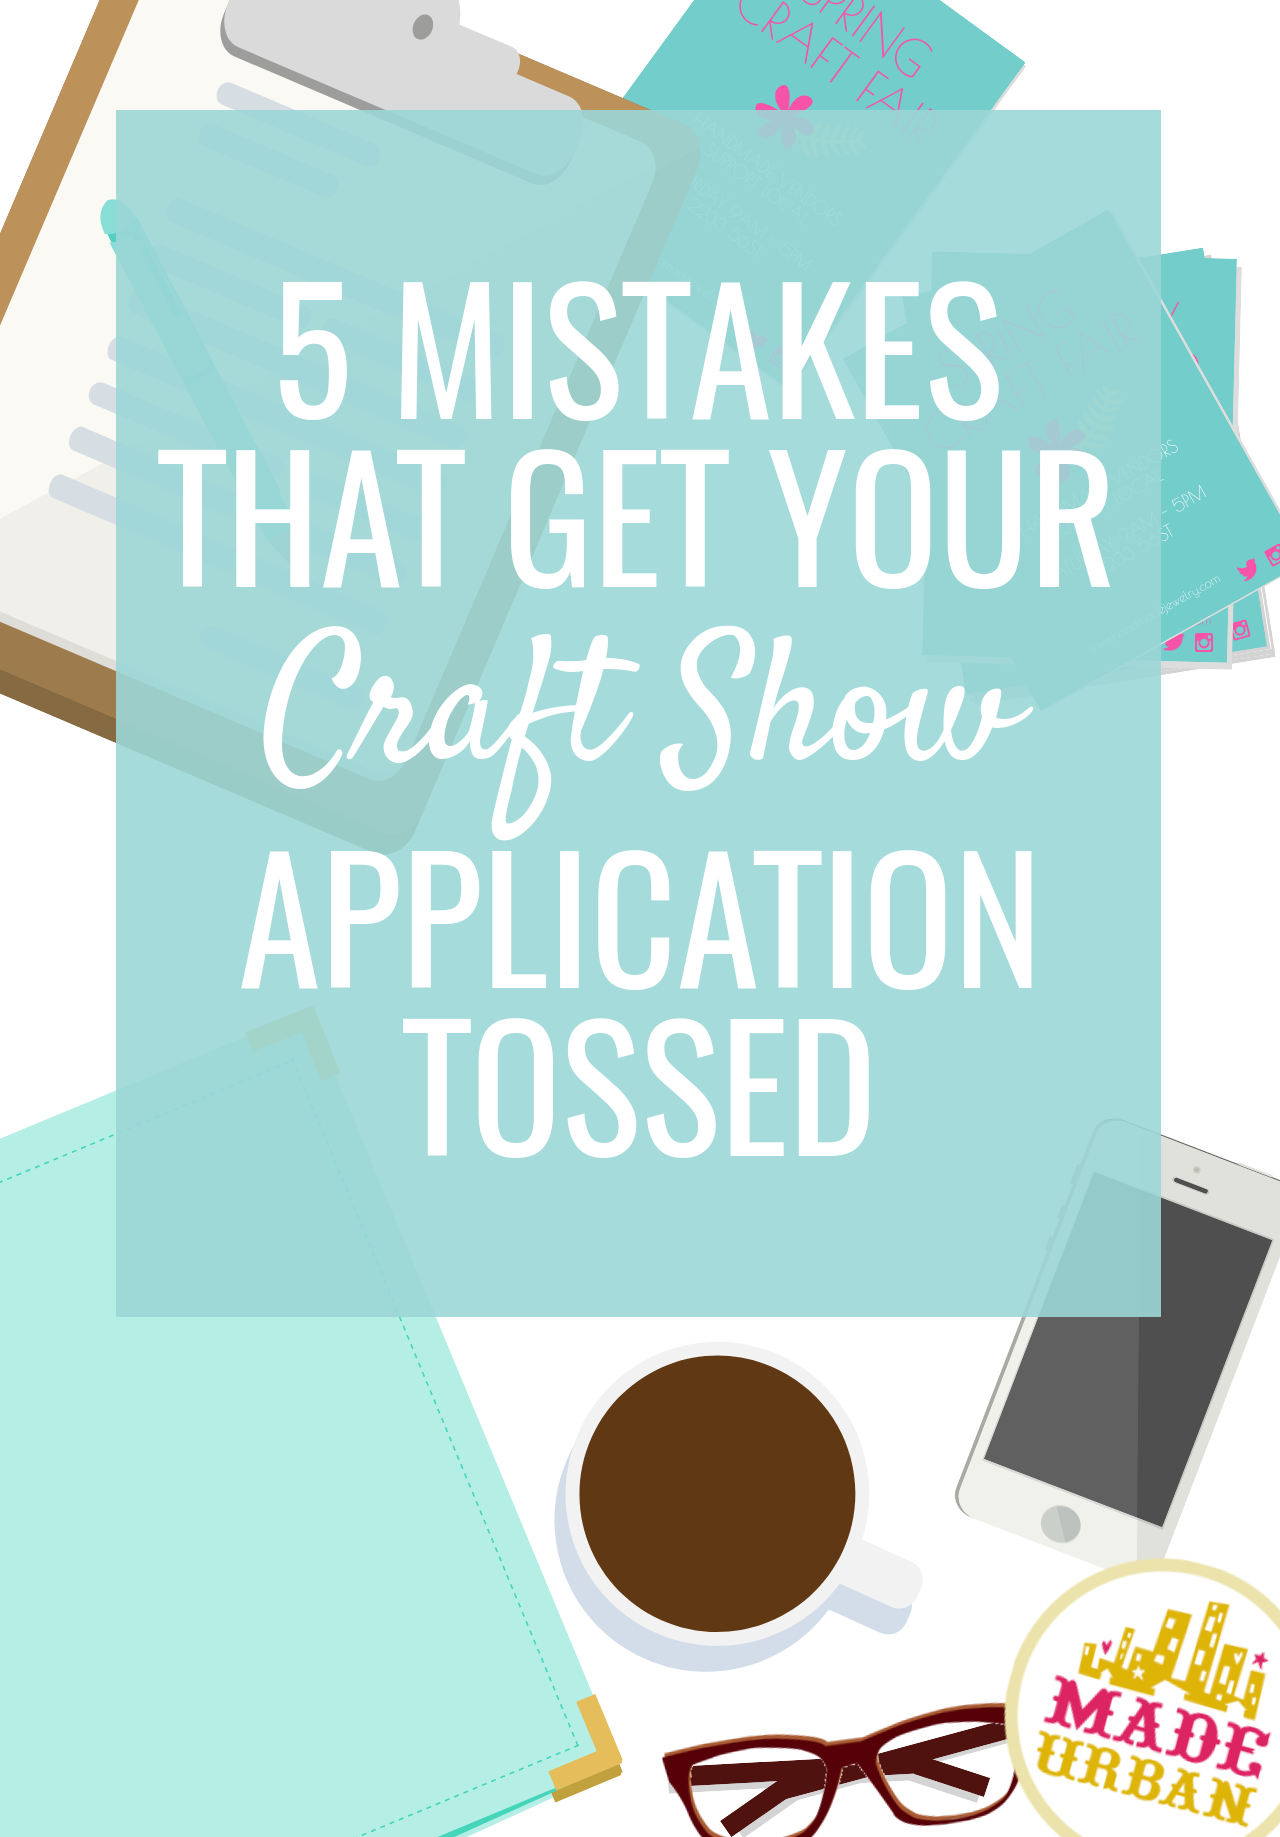 When submitting a craft show application, there are a few mistakes event organizers see often but aren't that obvious to crafters. Find out what they are.